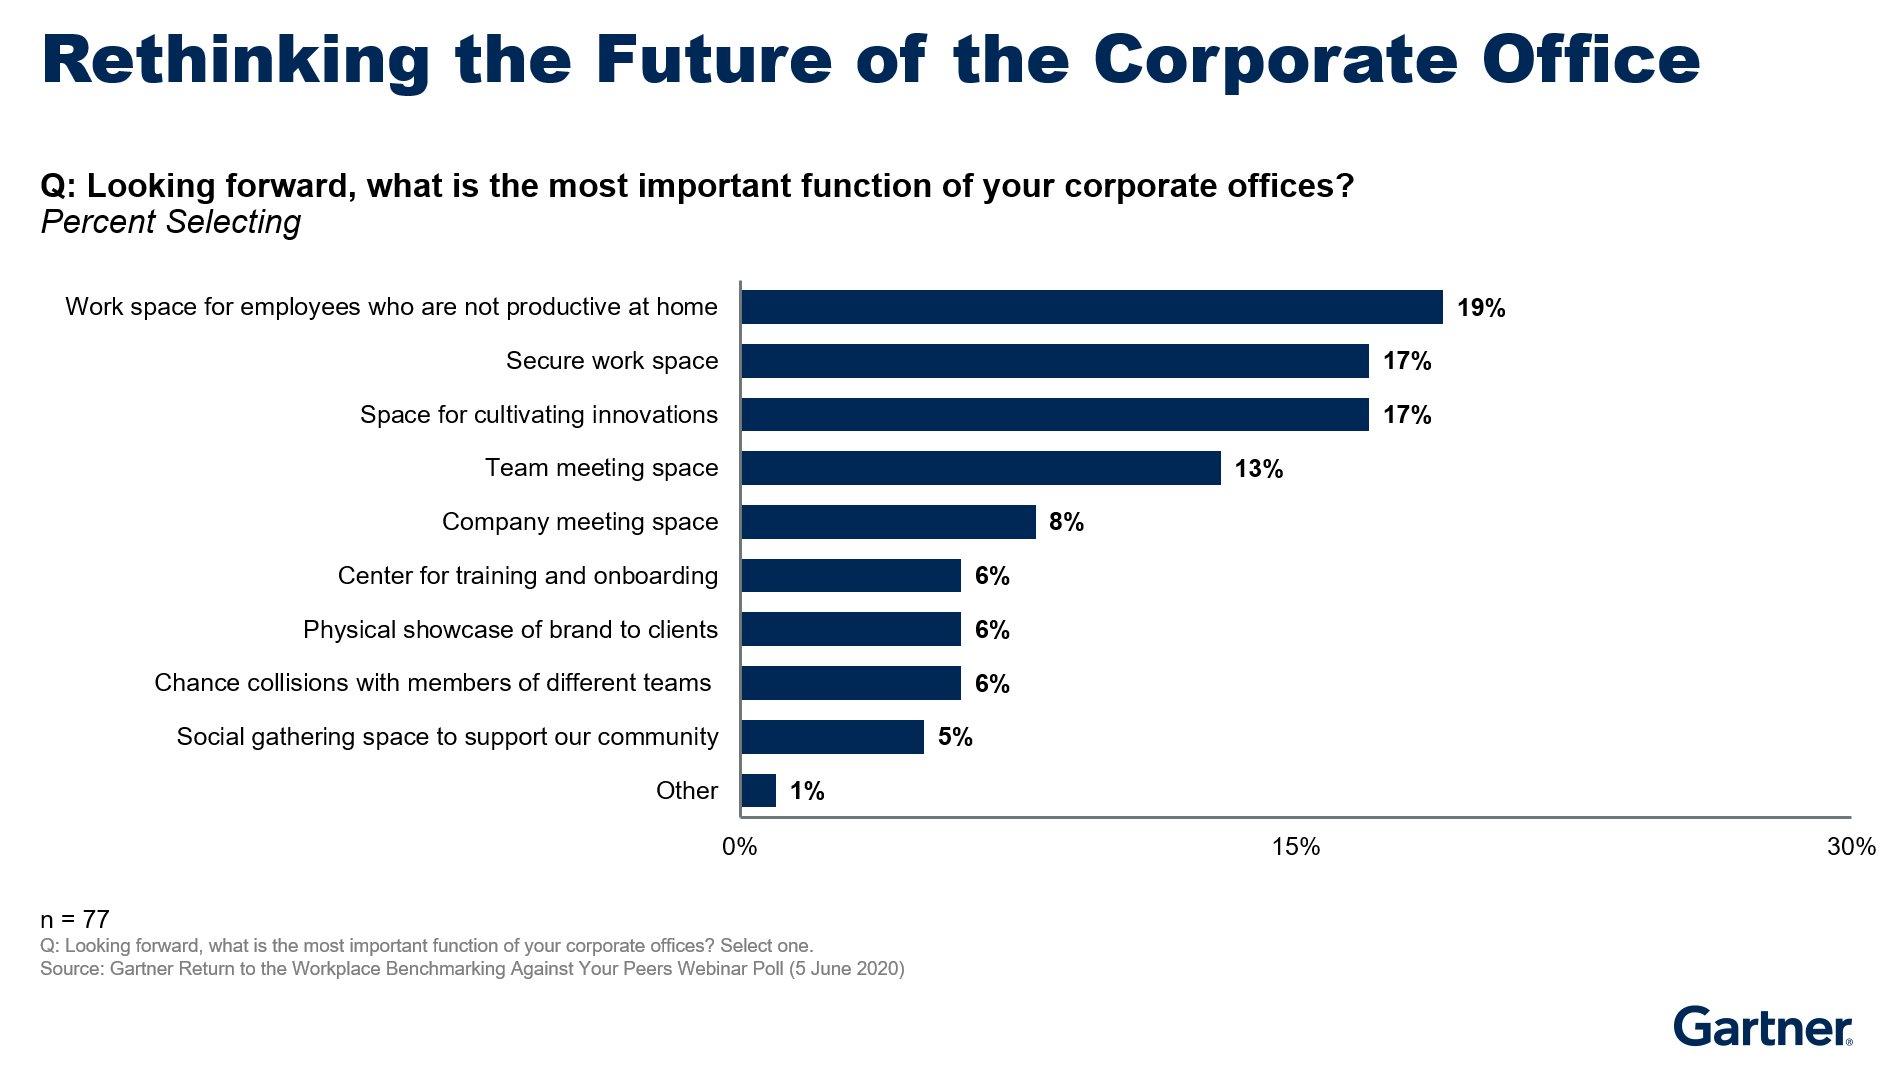 Figure 2. Rethinking the Future of the Corporate Office